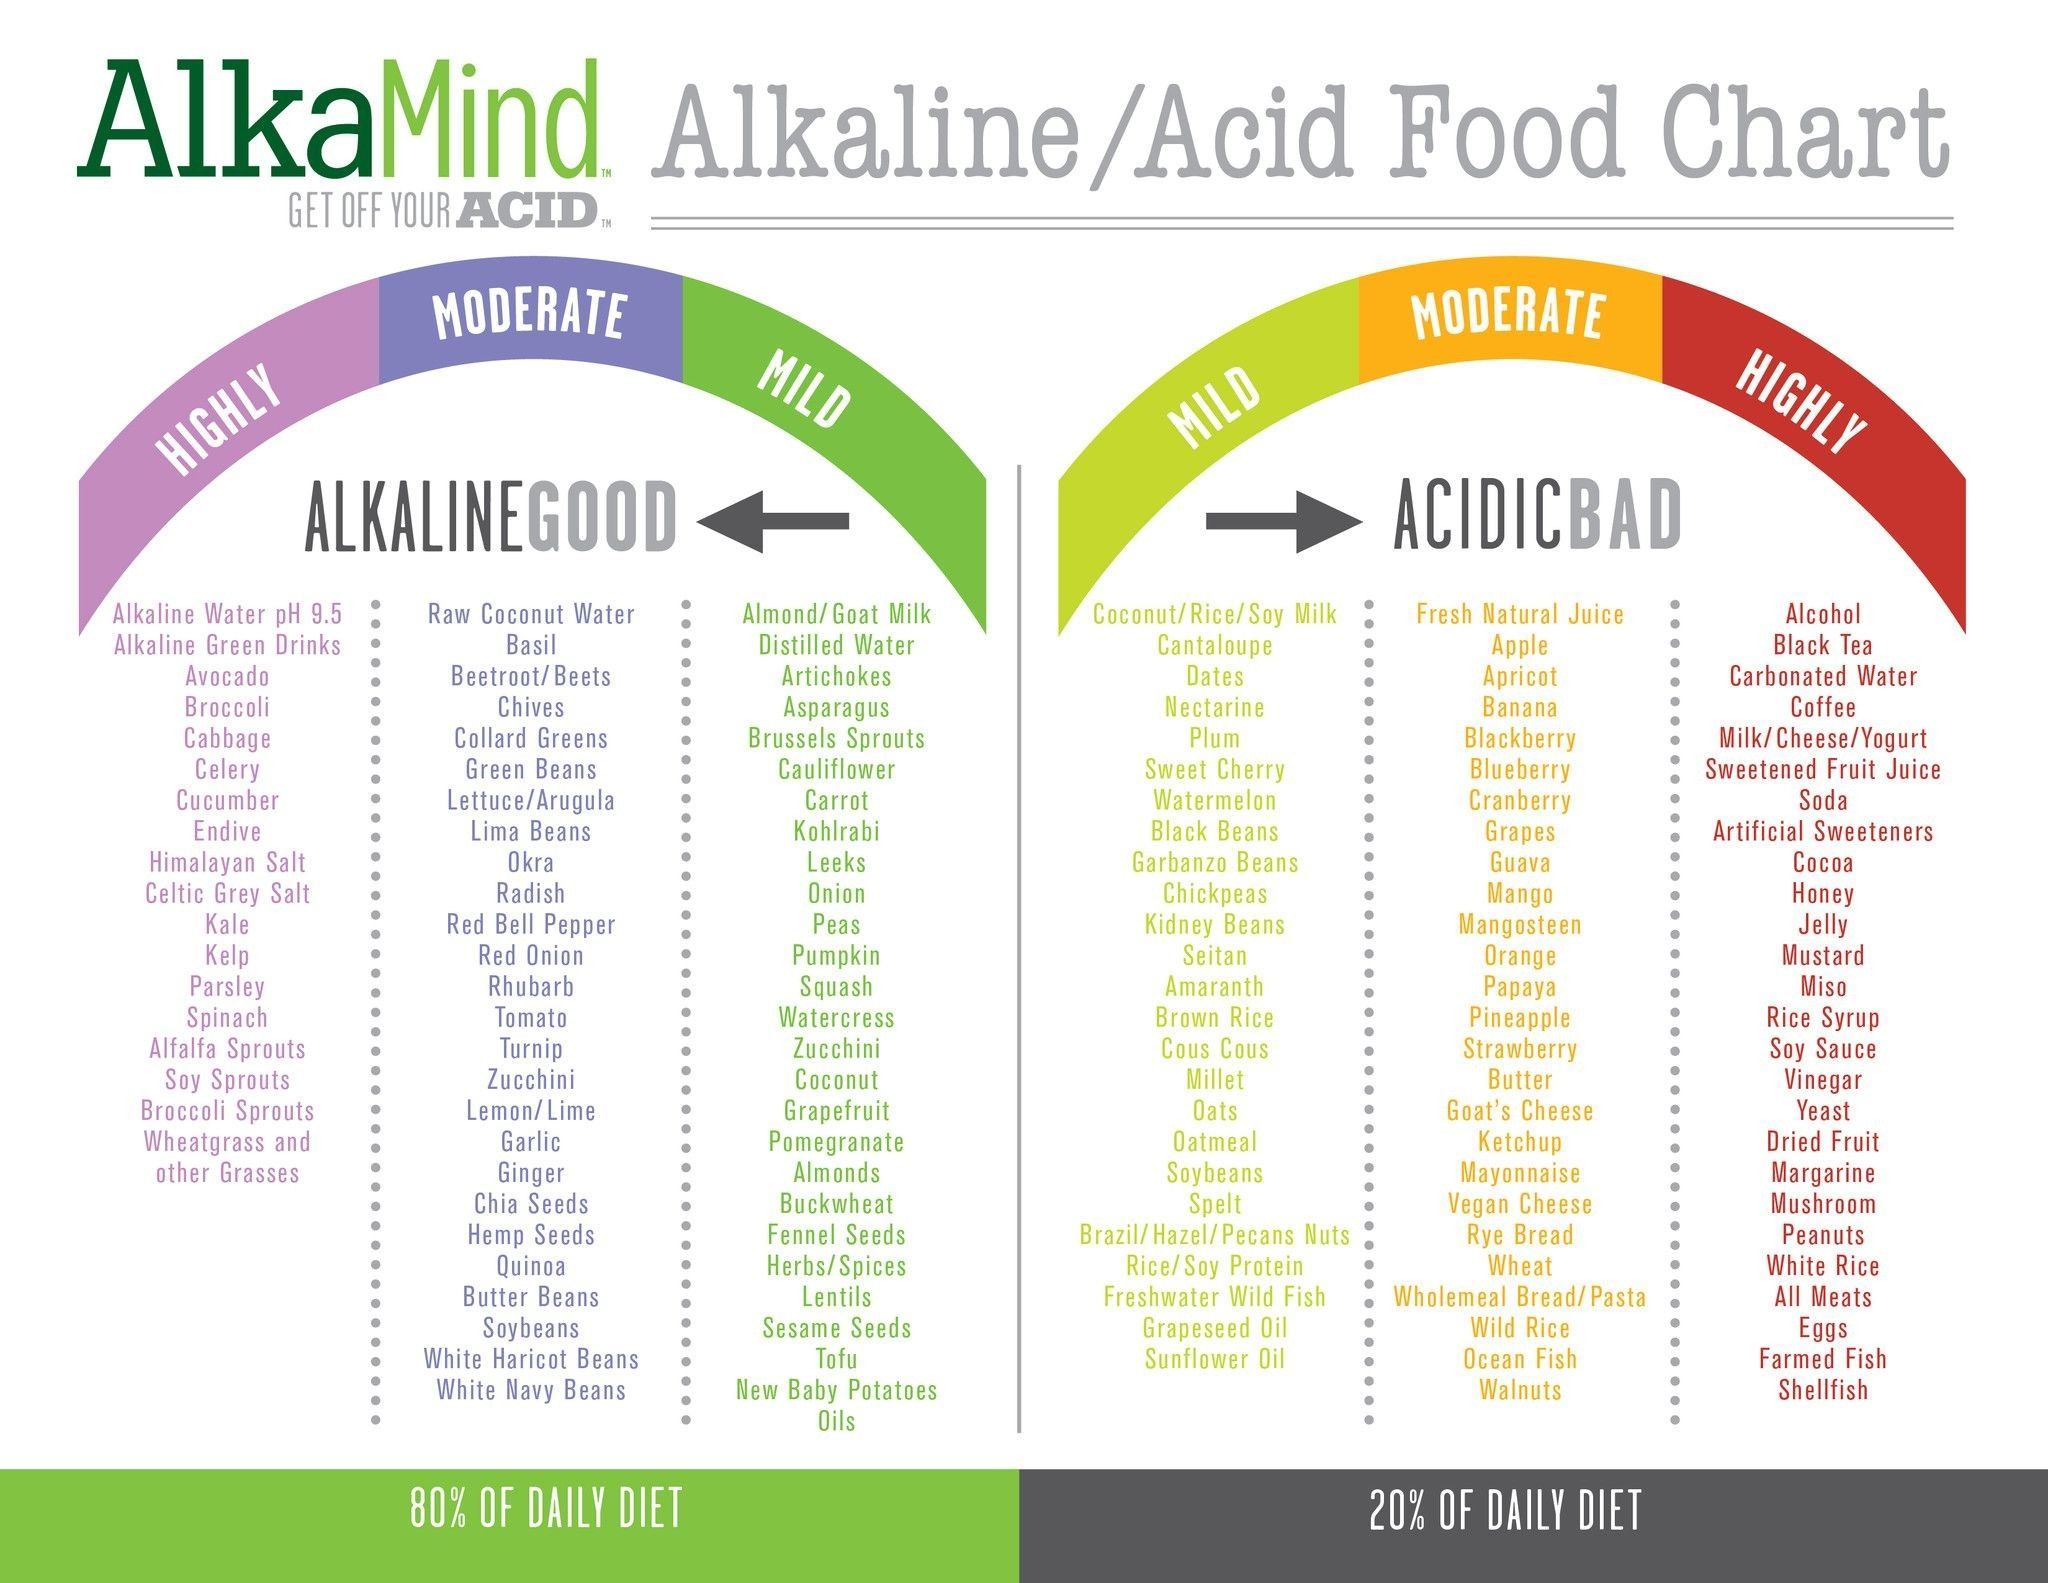 30 Fresh Alkaline Food Chart Mayo Clinic Free Templates For Work Ideas